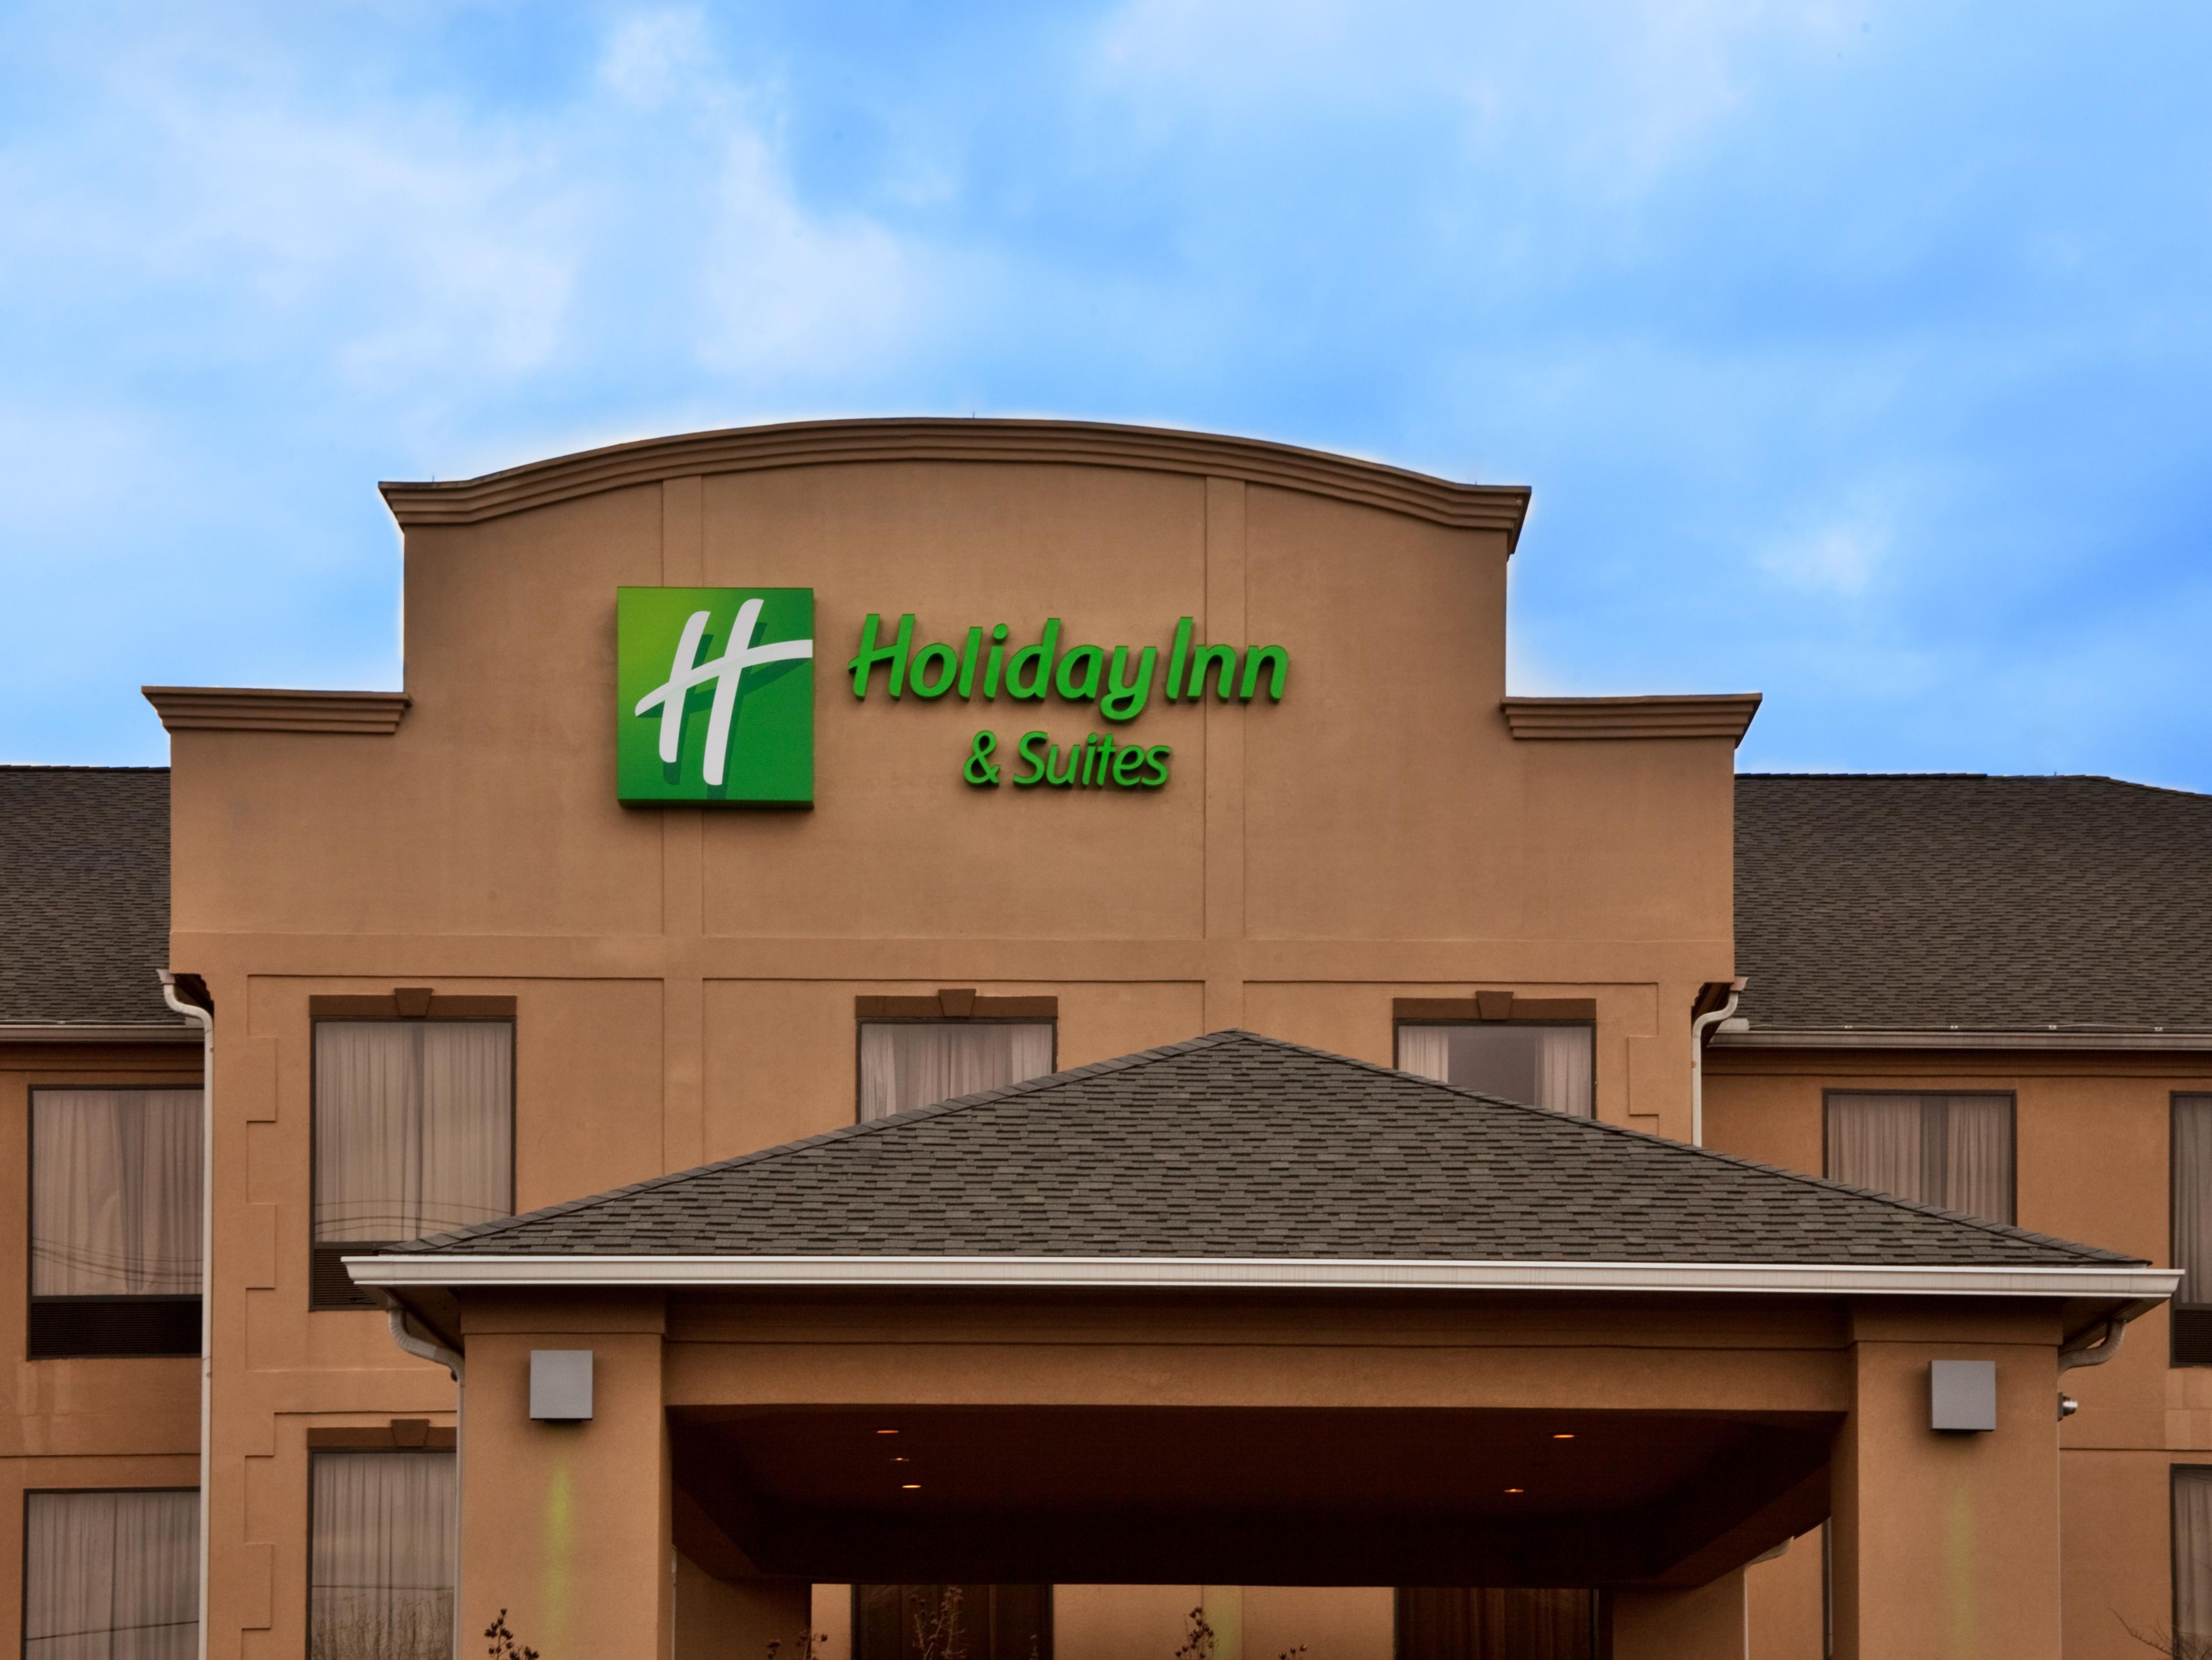 Holiday Inn Opelousas inviting you to come home